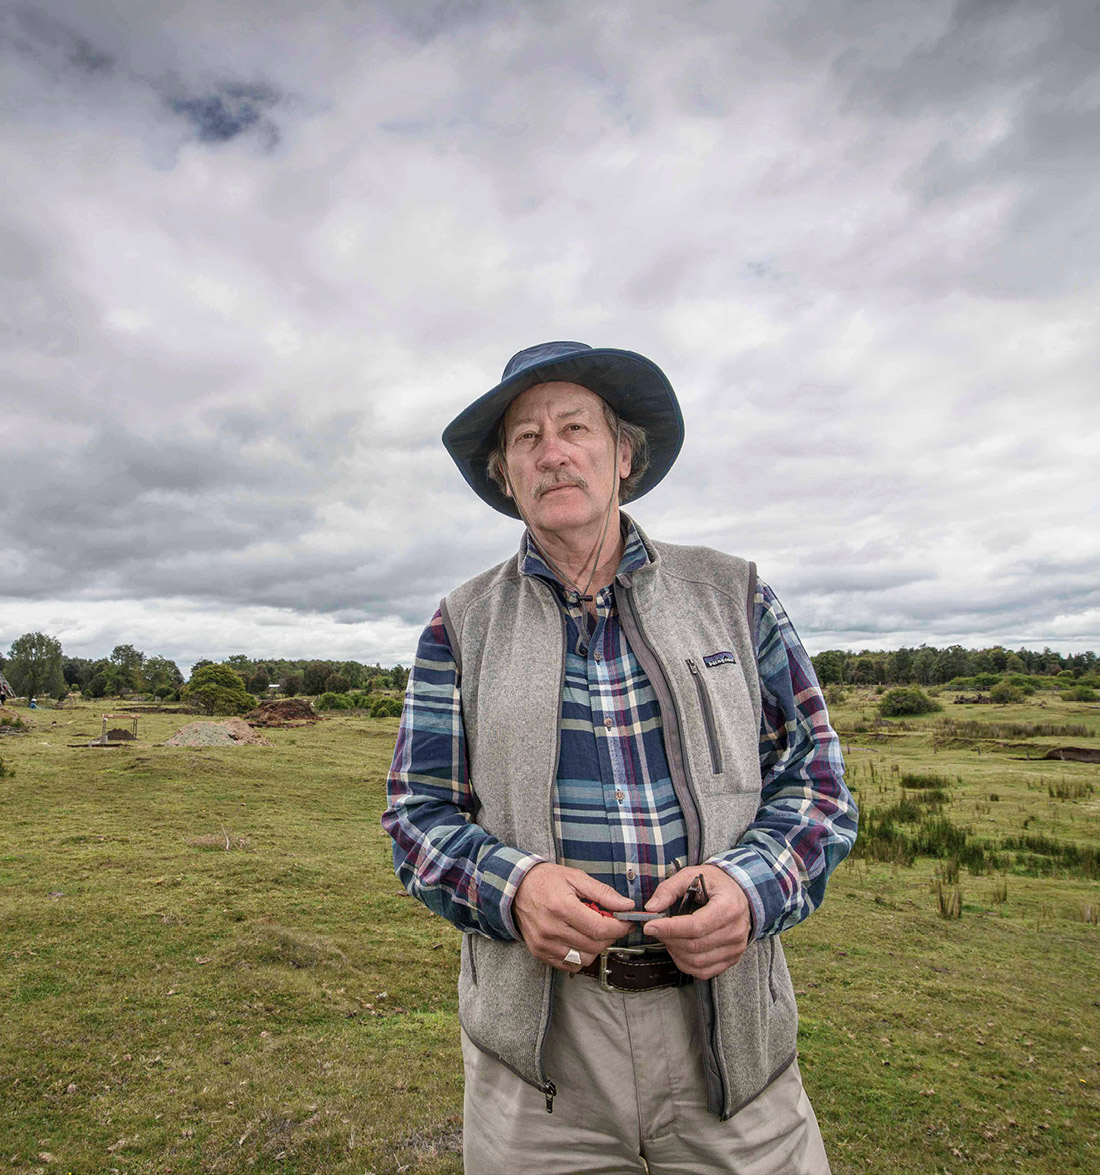 Tom Dillehay, pictured here in Chile, has spent the past 40 years excavating archaeological sites all along South America's Pacific coast. (FRANCISCO NEGRONI)